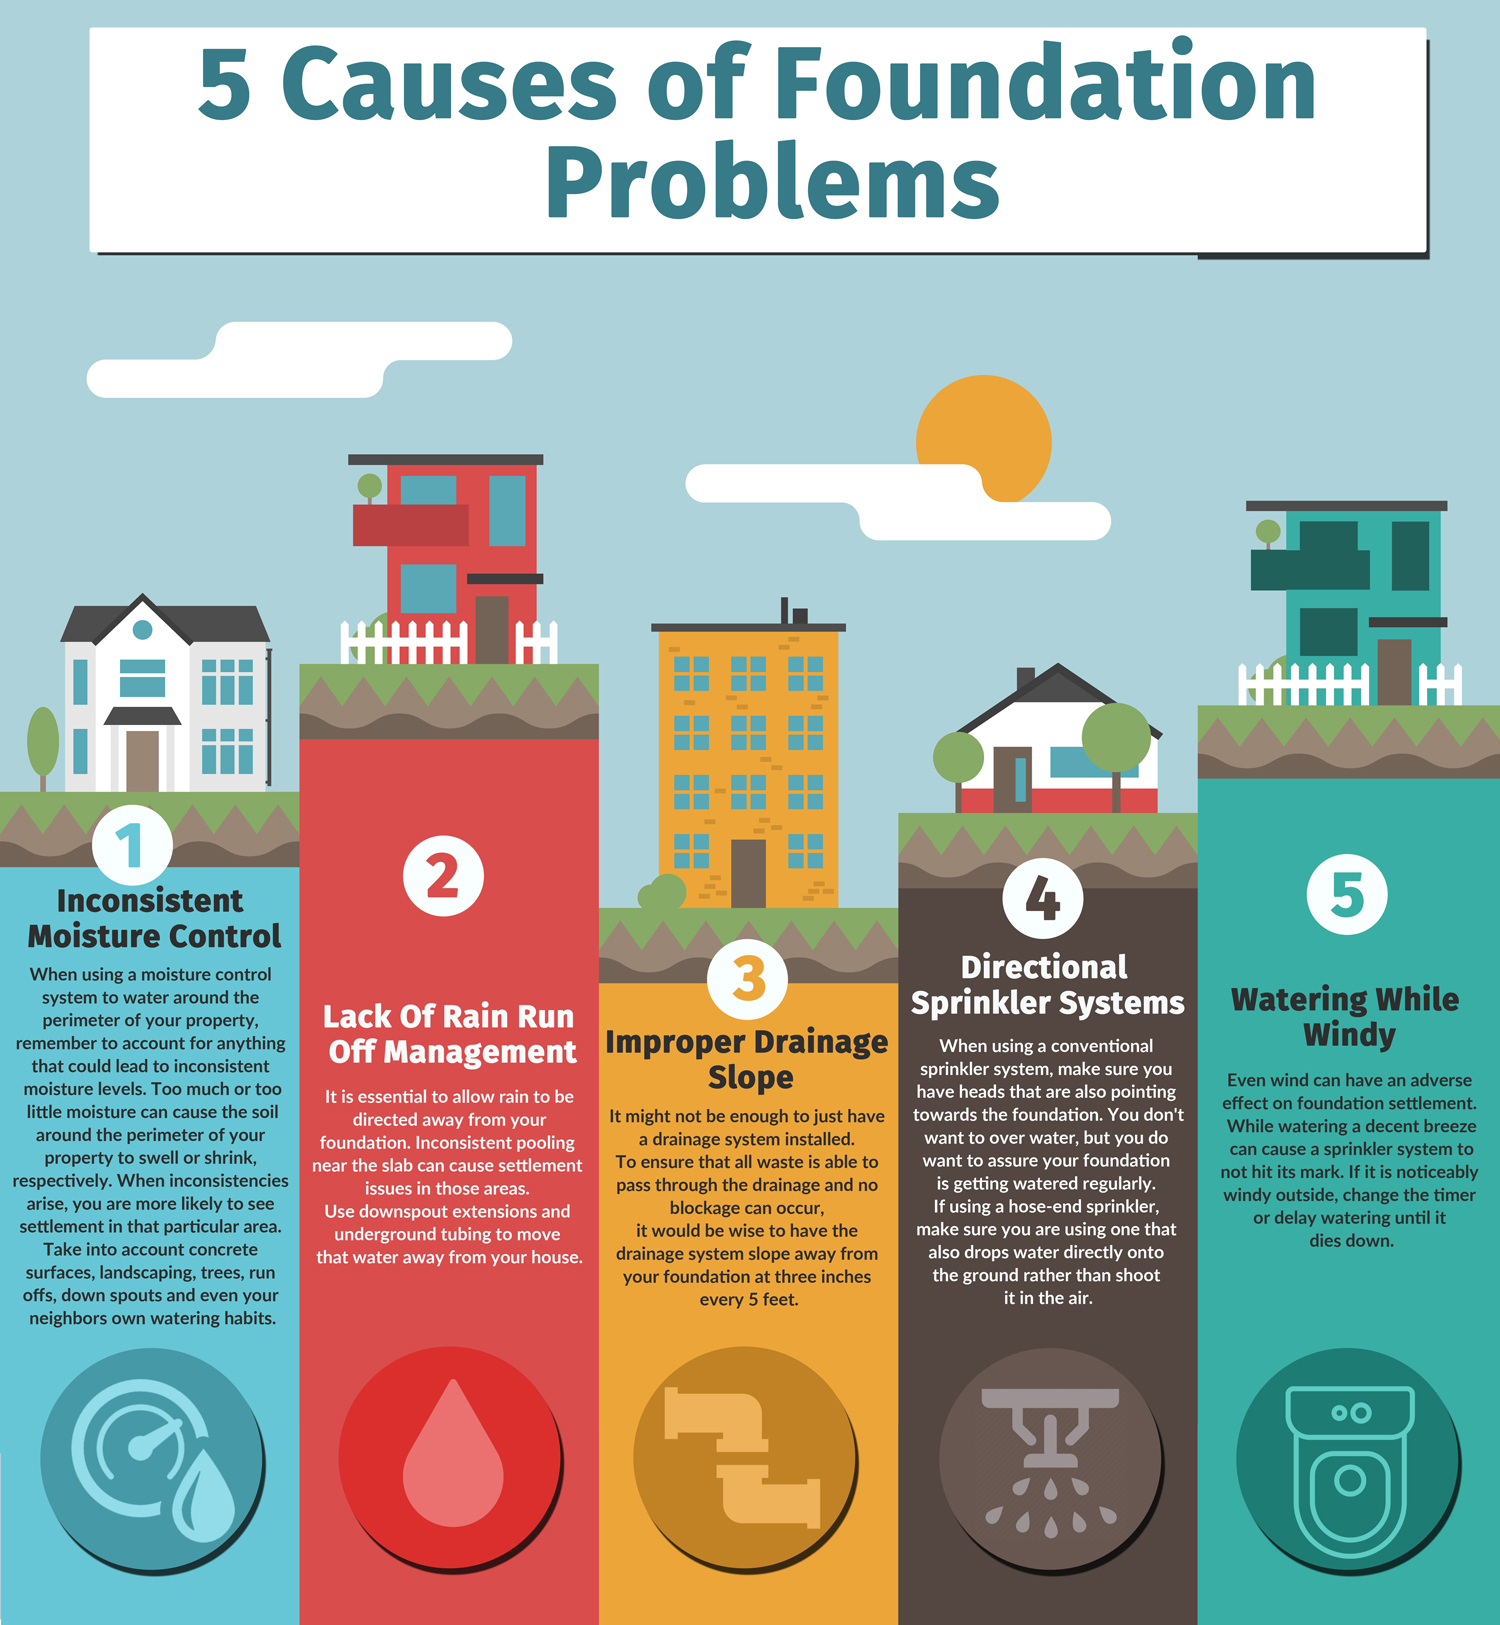 5 Causes of Foundation Problems